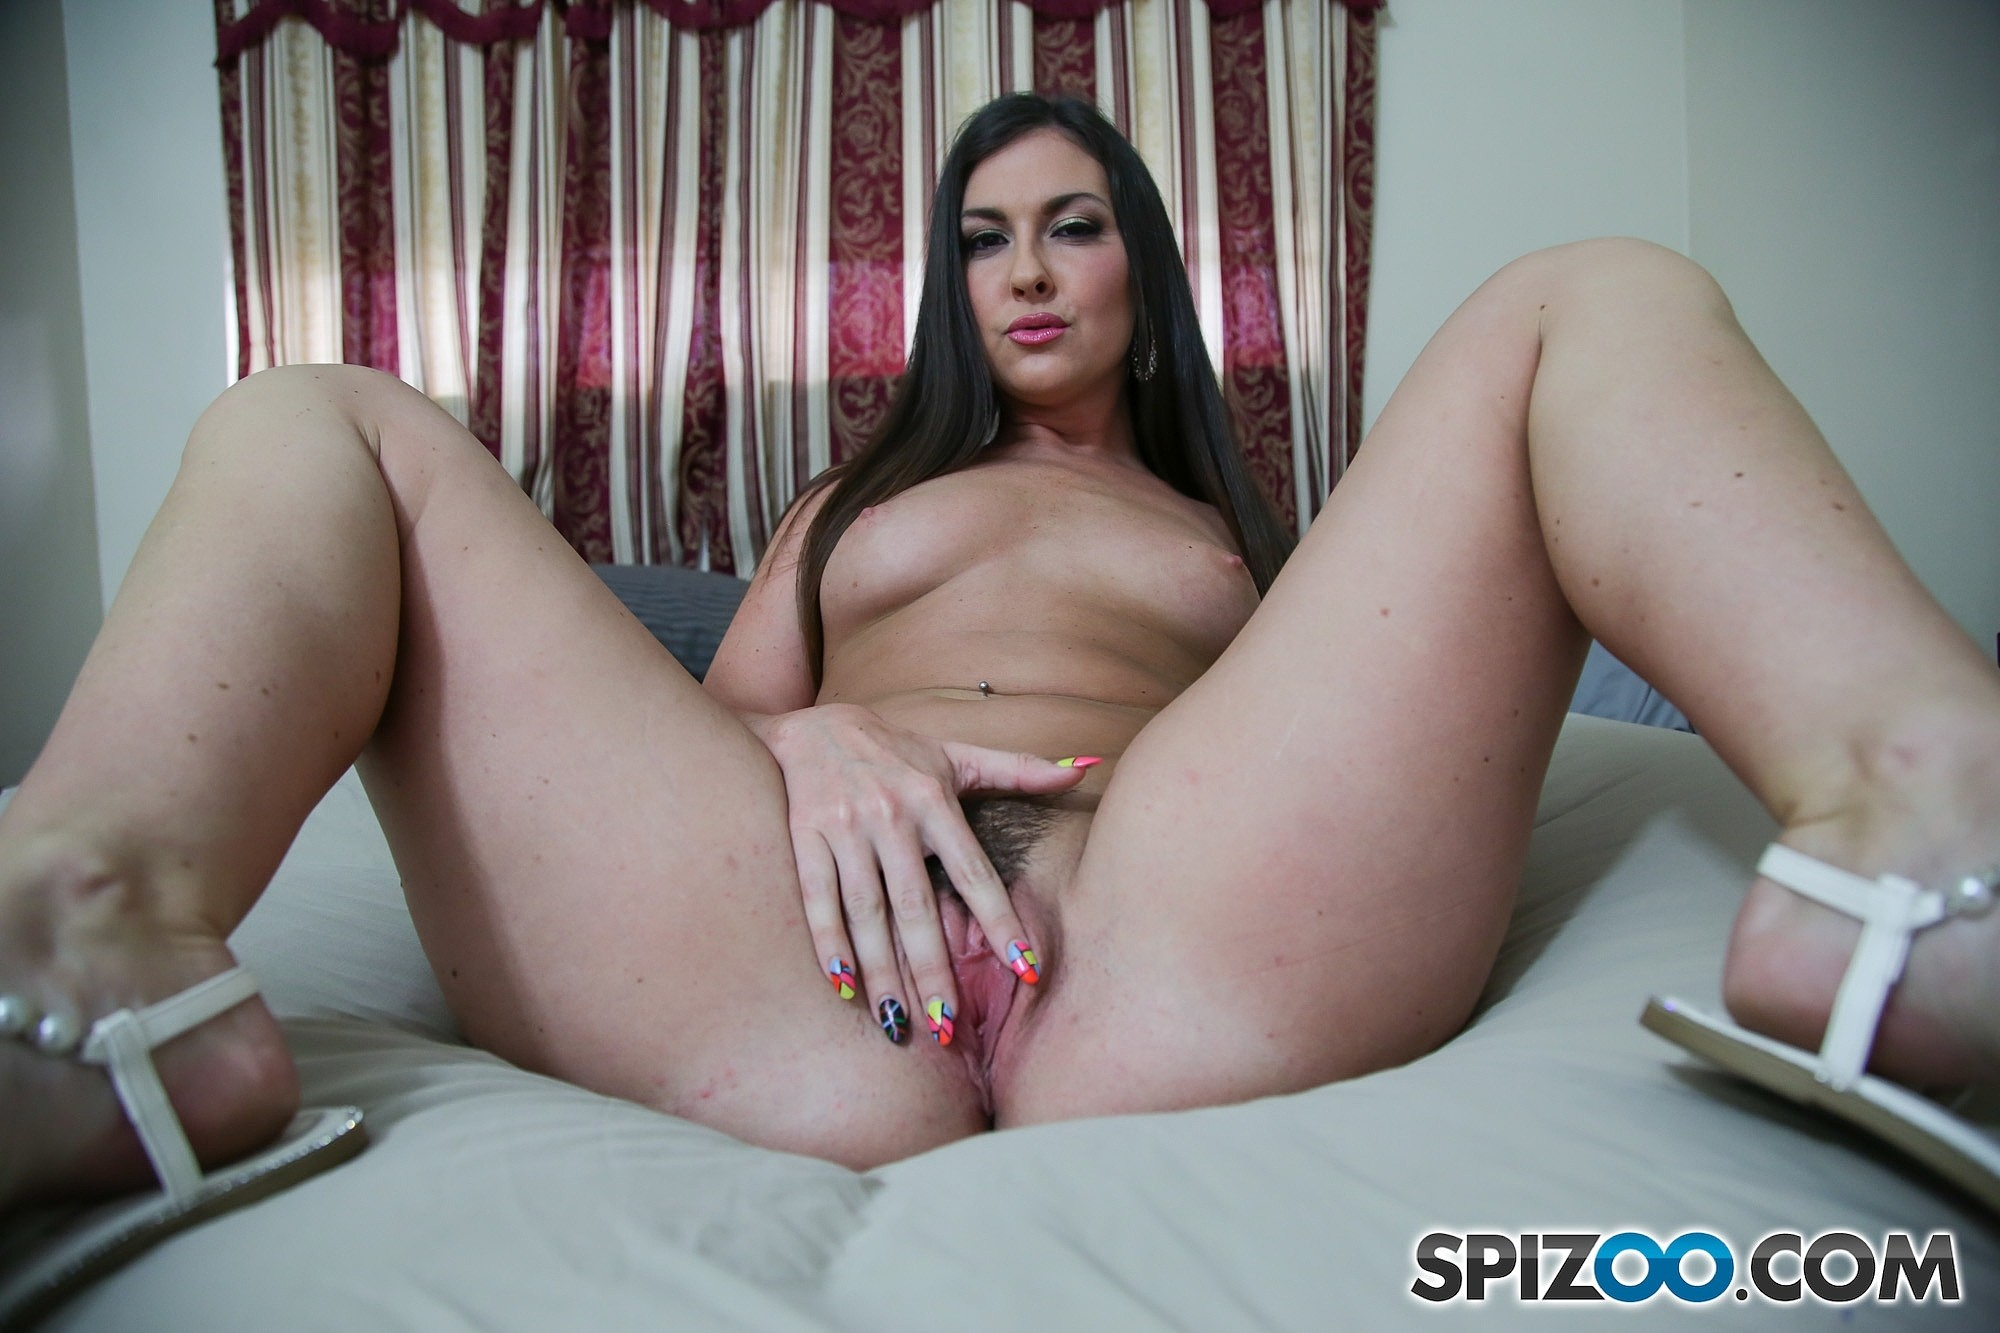 Brittany shae loves anal sex brazzers 2